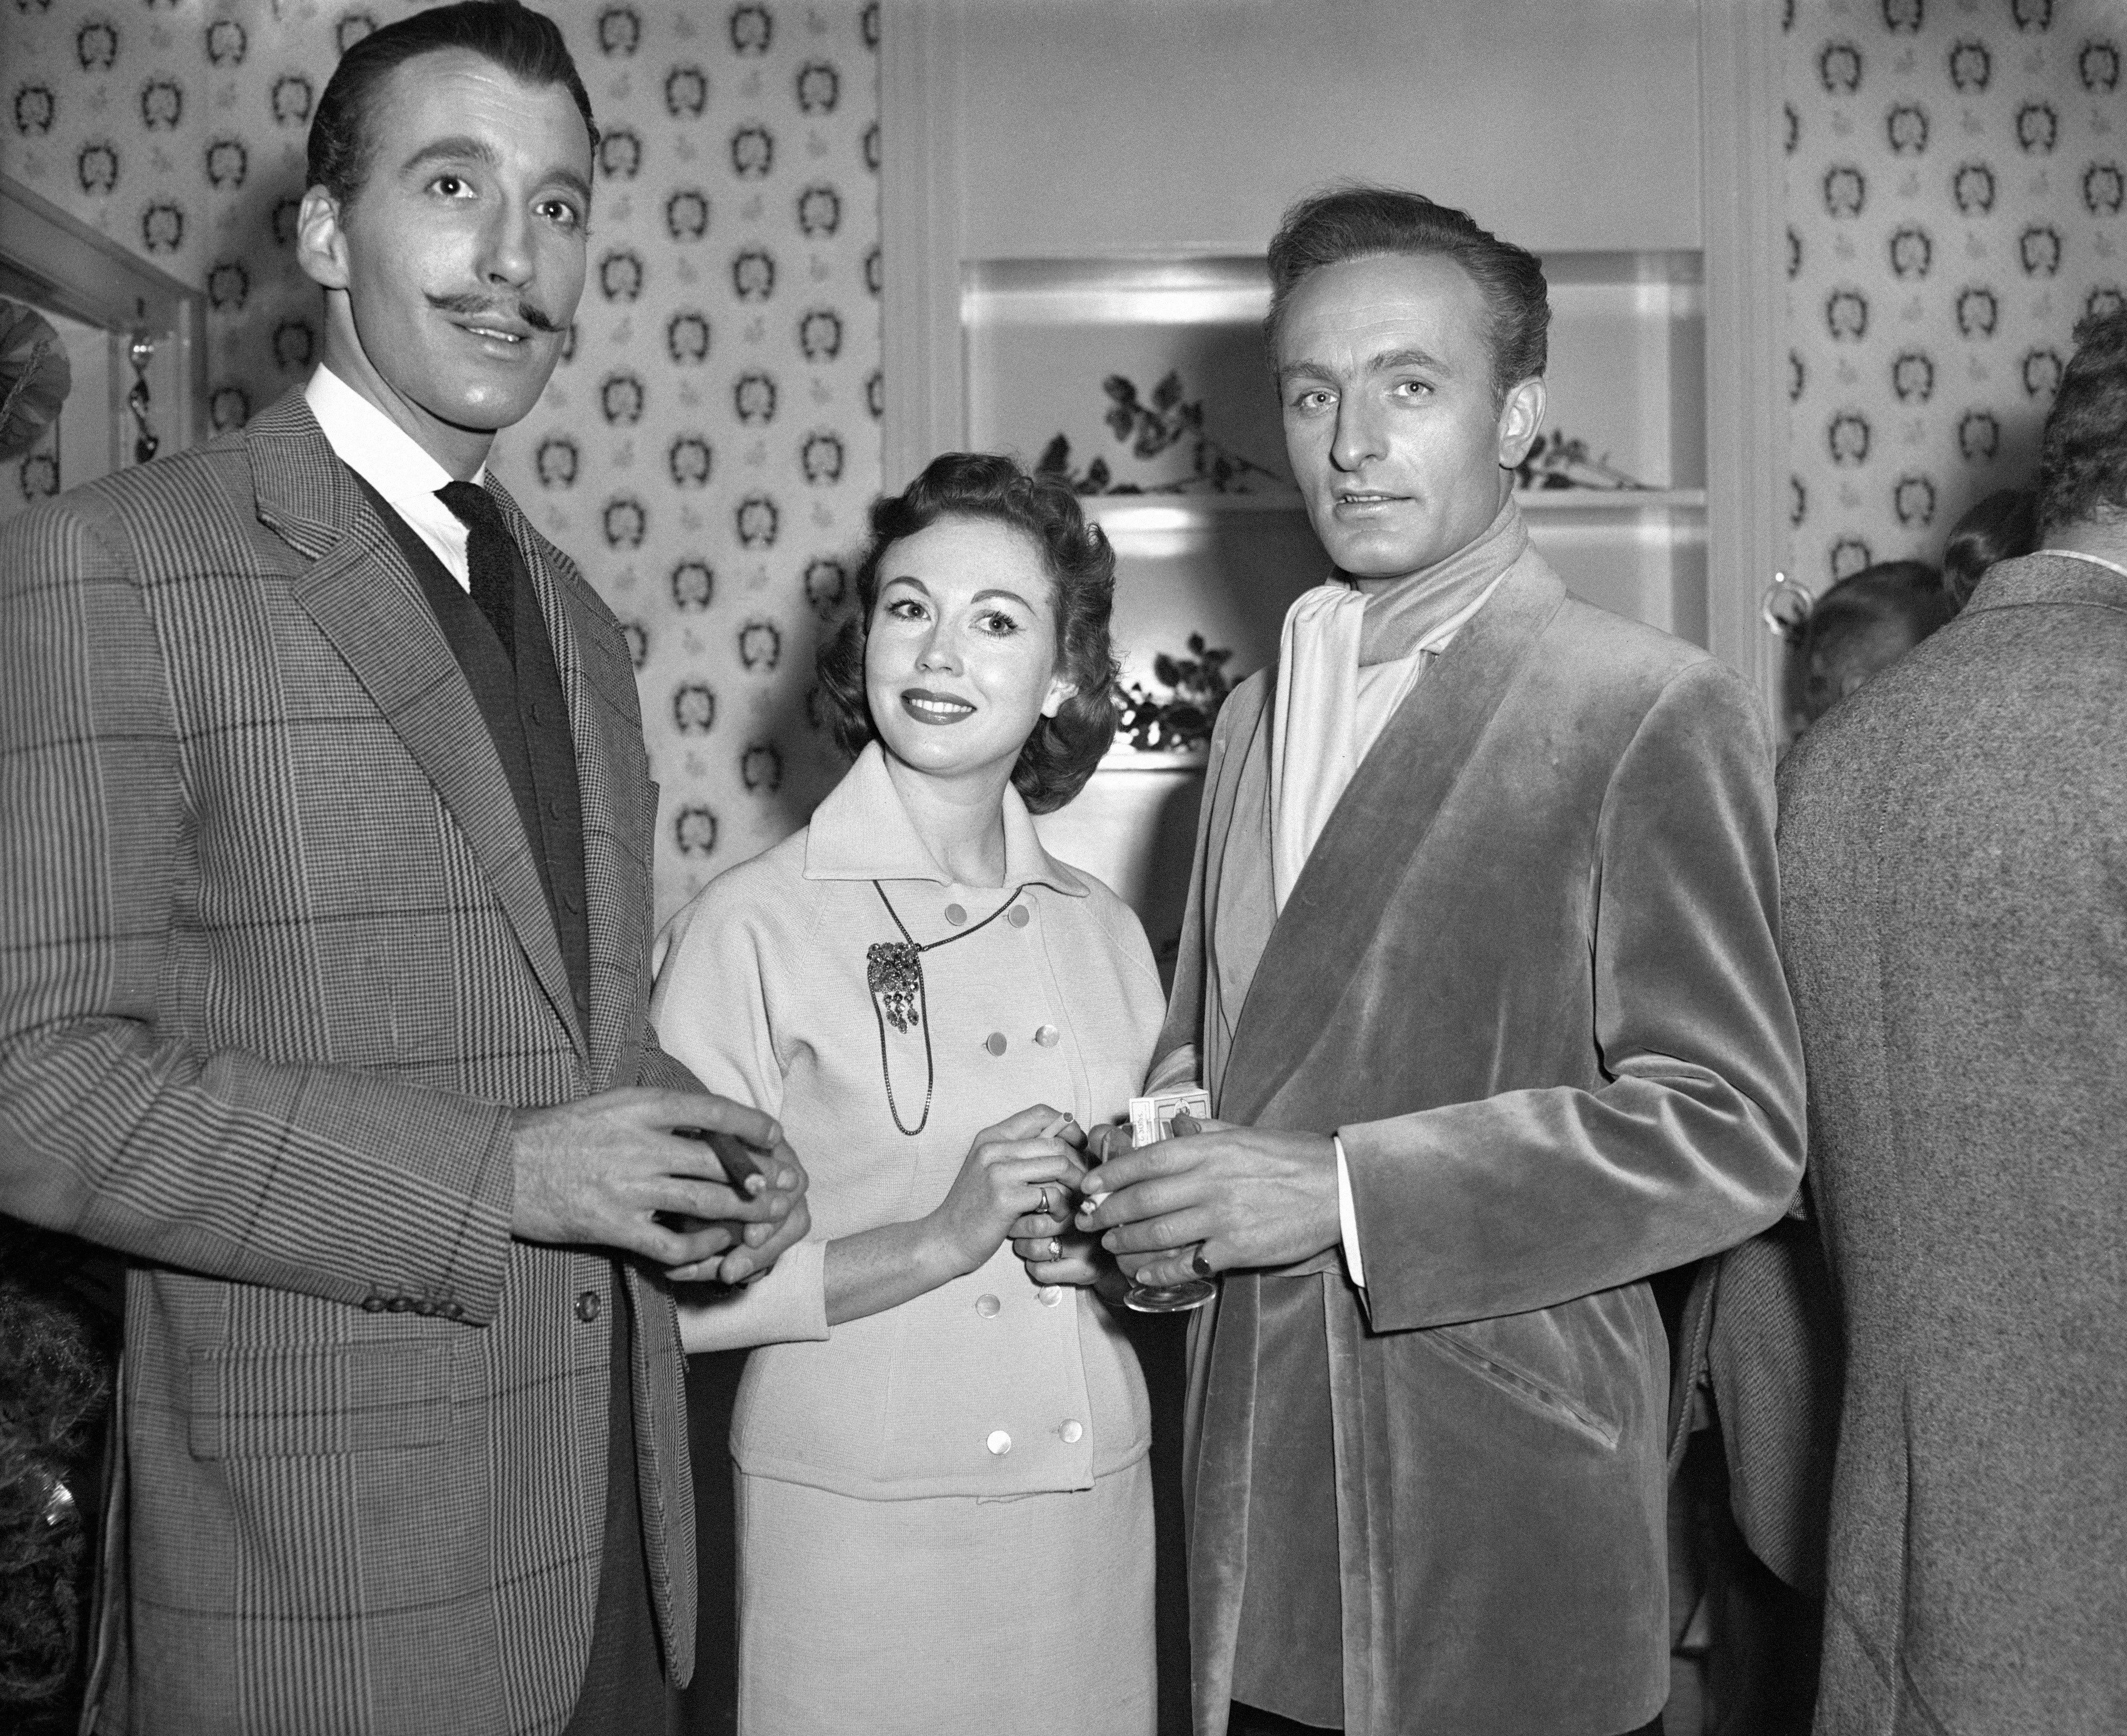 Christopher Lee, Hazel Court and Anton Diffring at the Hammer Christmas party in December 1958